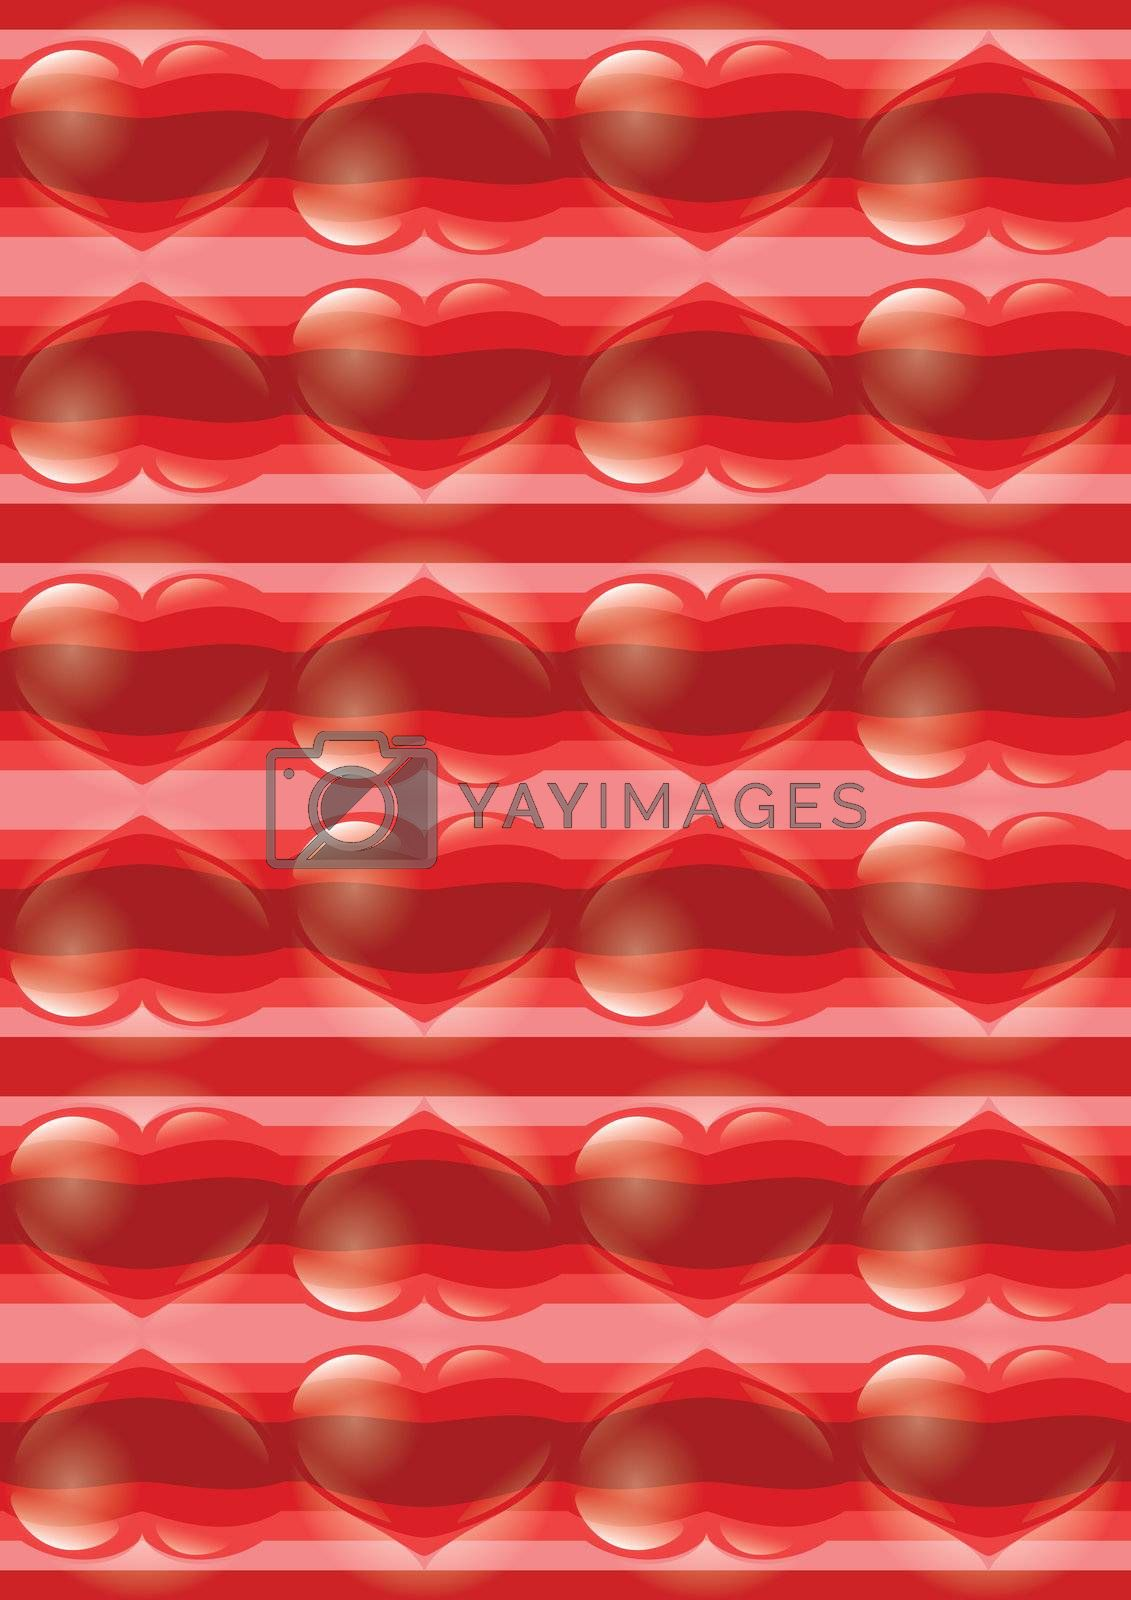 Abstract bright glowing Heart background. Valentine's Day.